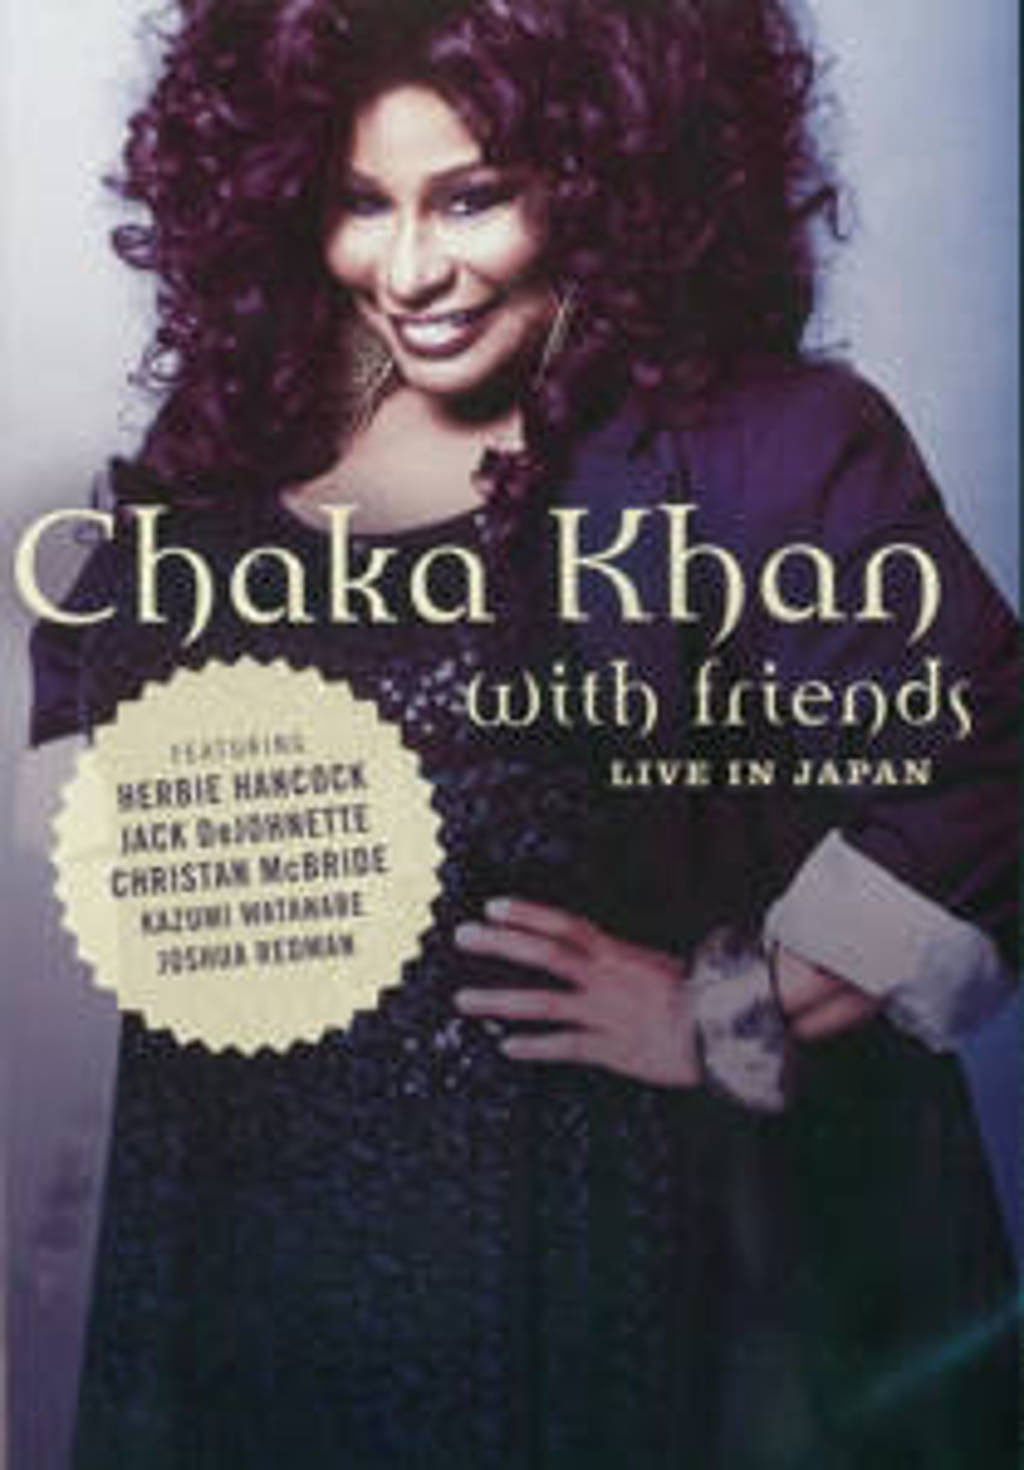 Chaka Khan - With Friends/Live In Japan (DVD)